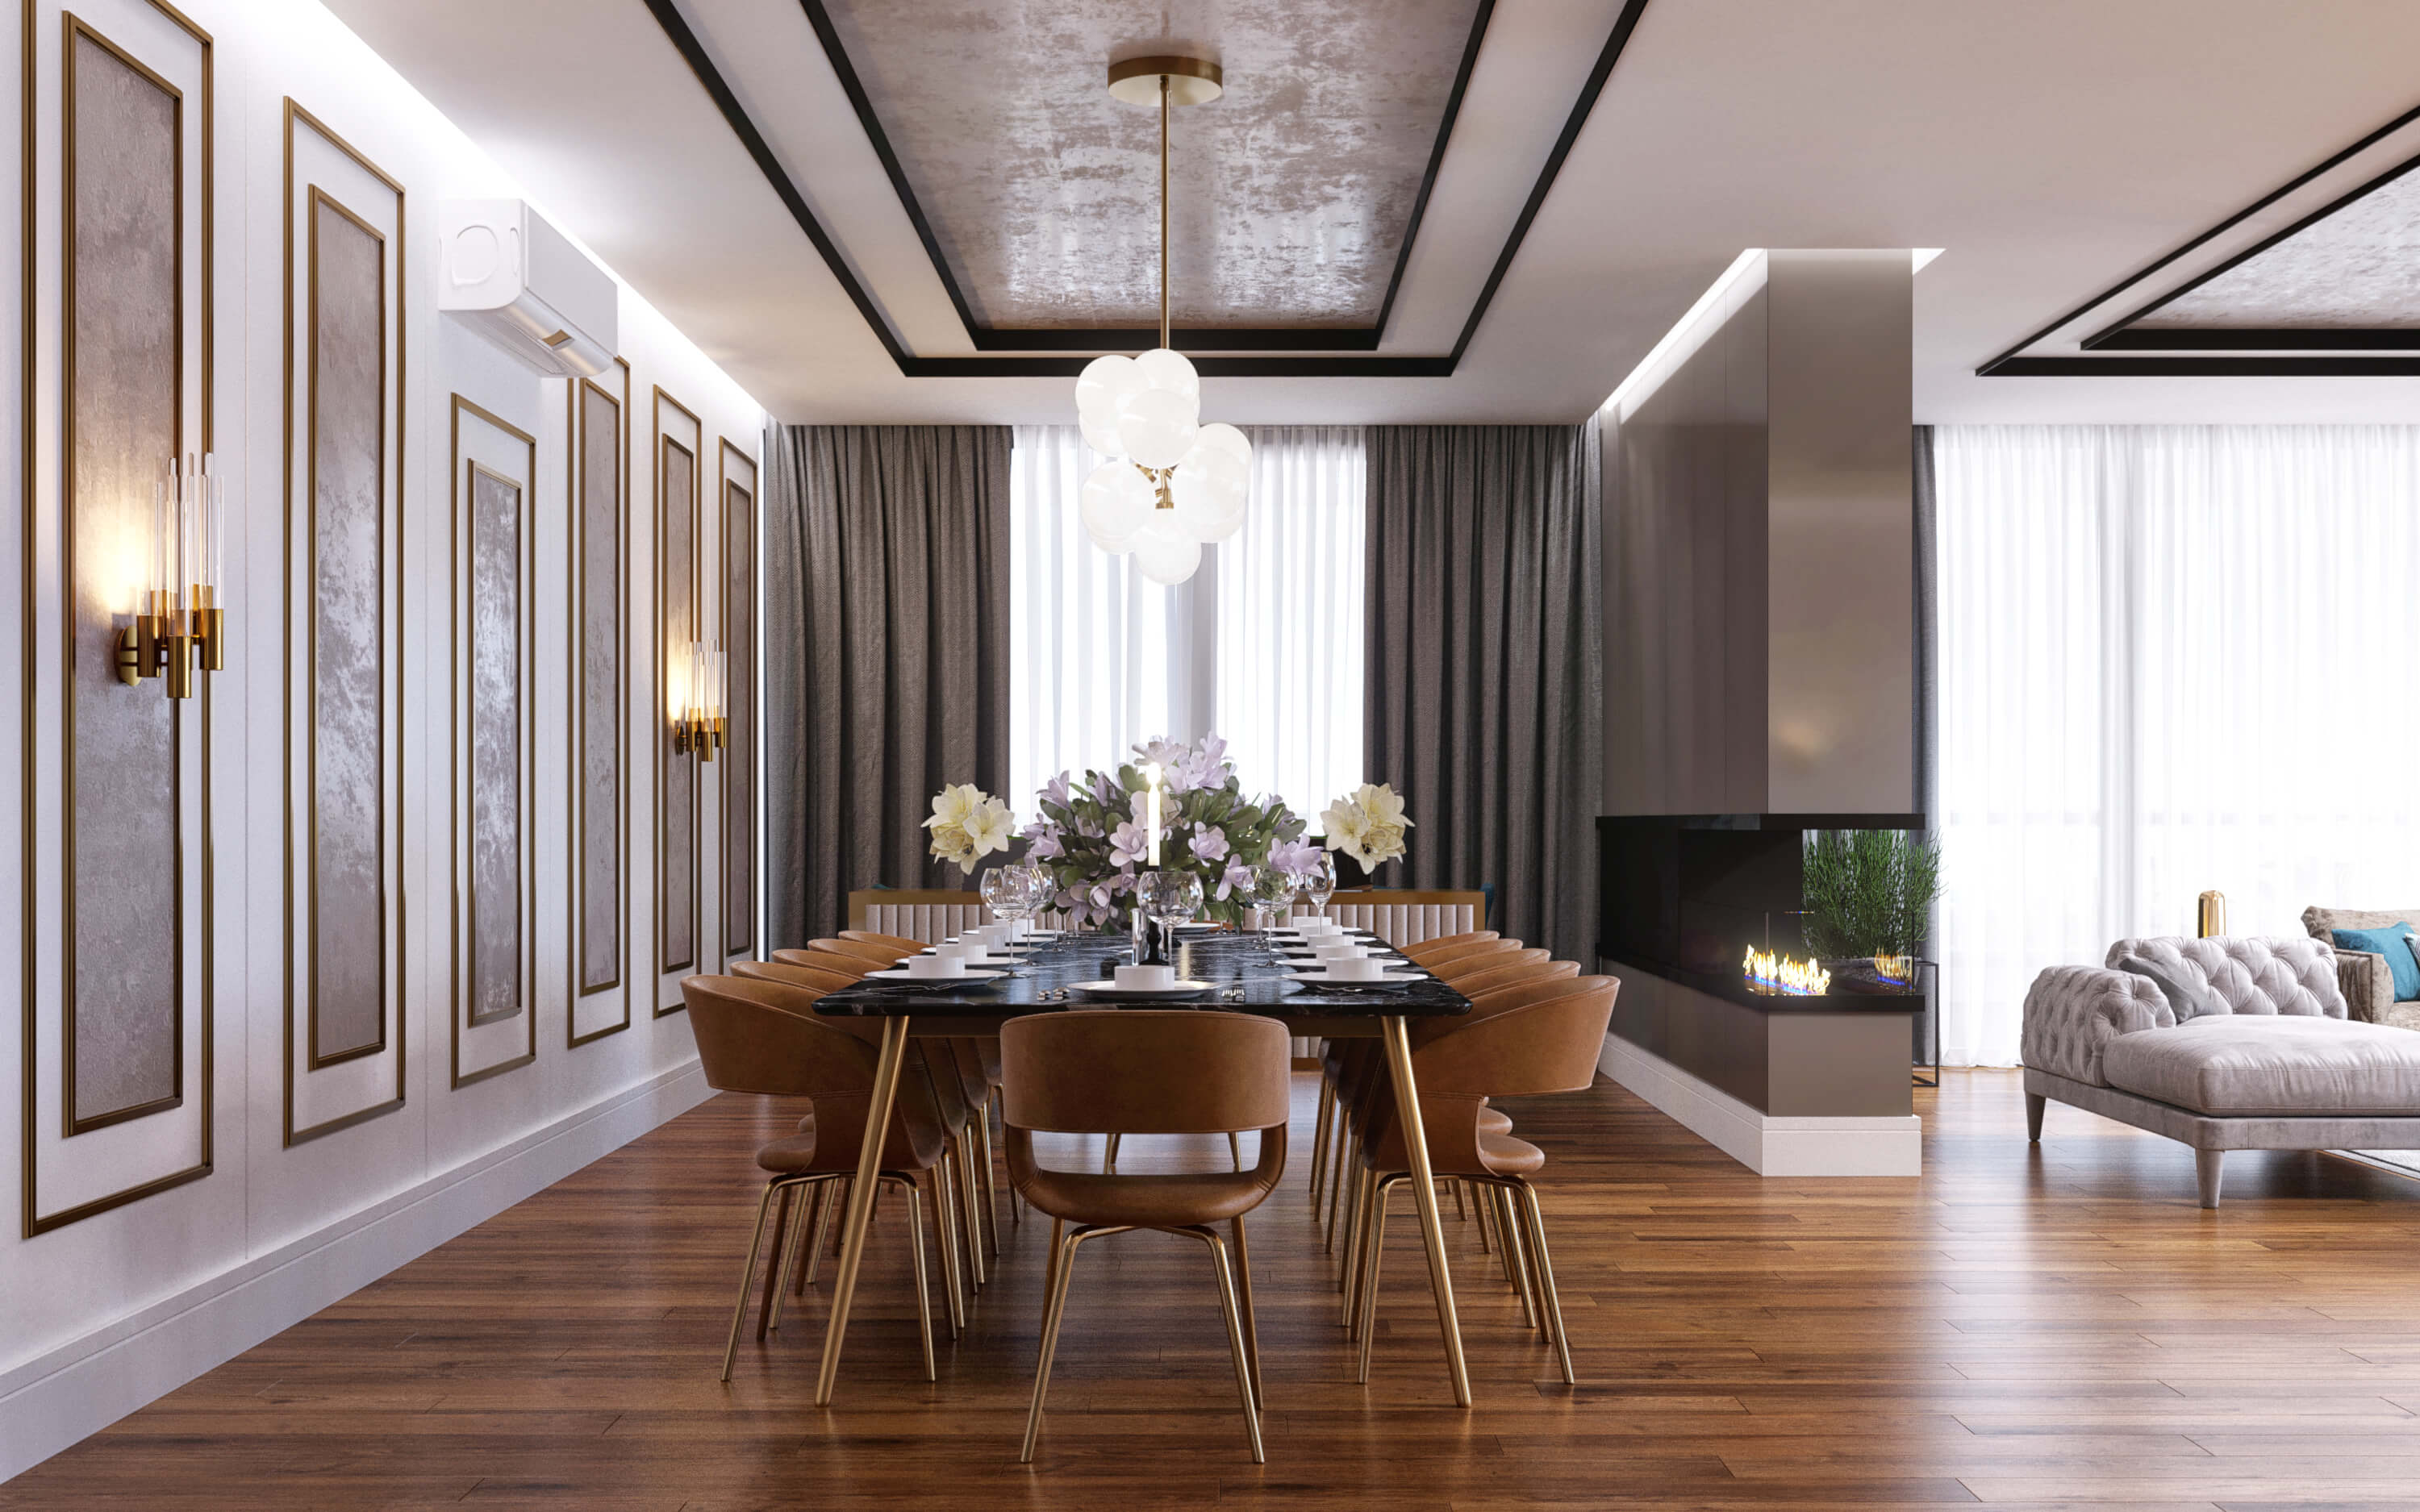 Hotel Architecture and Interior Design HT Flat